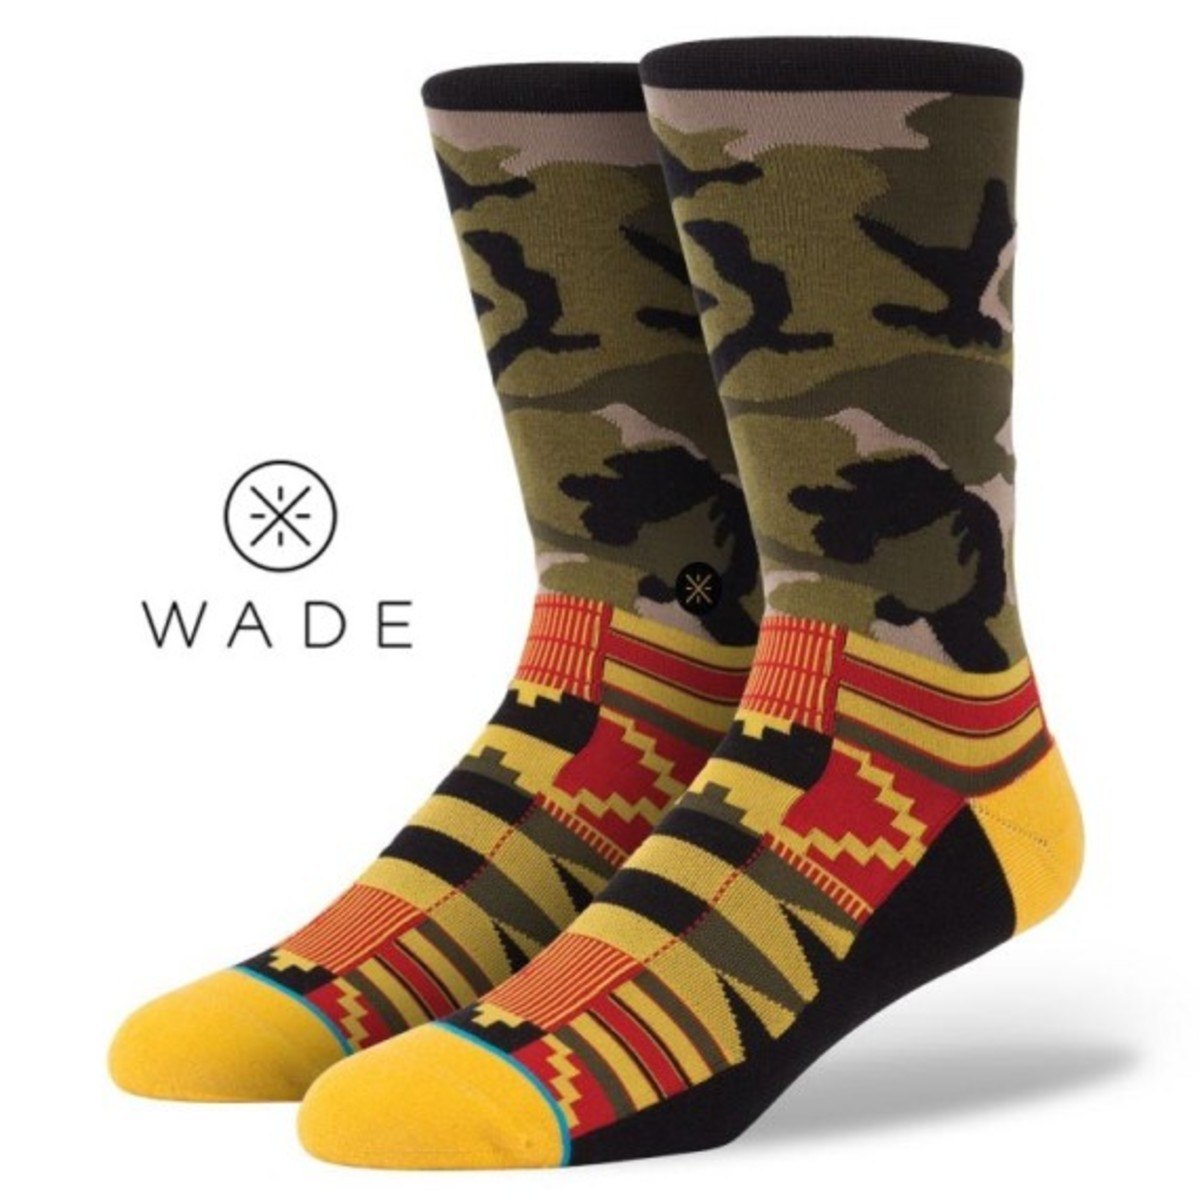 dwyane wade x stance socks � summer 2014 collection